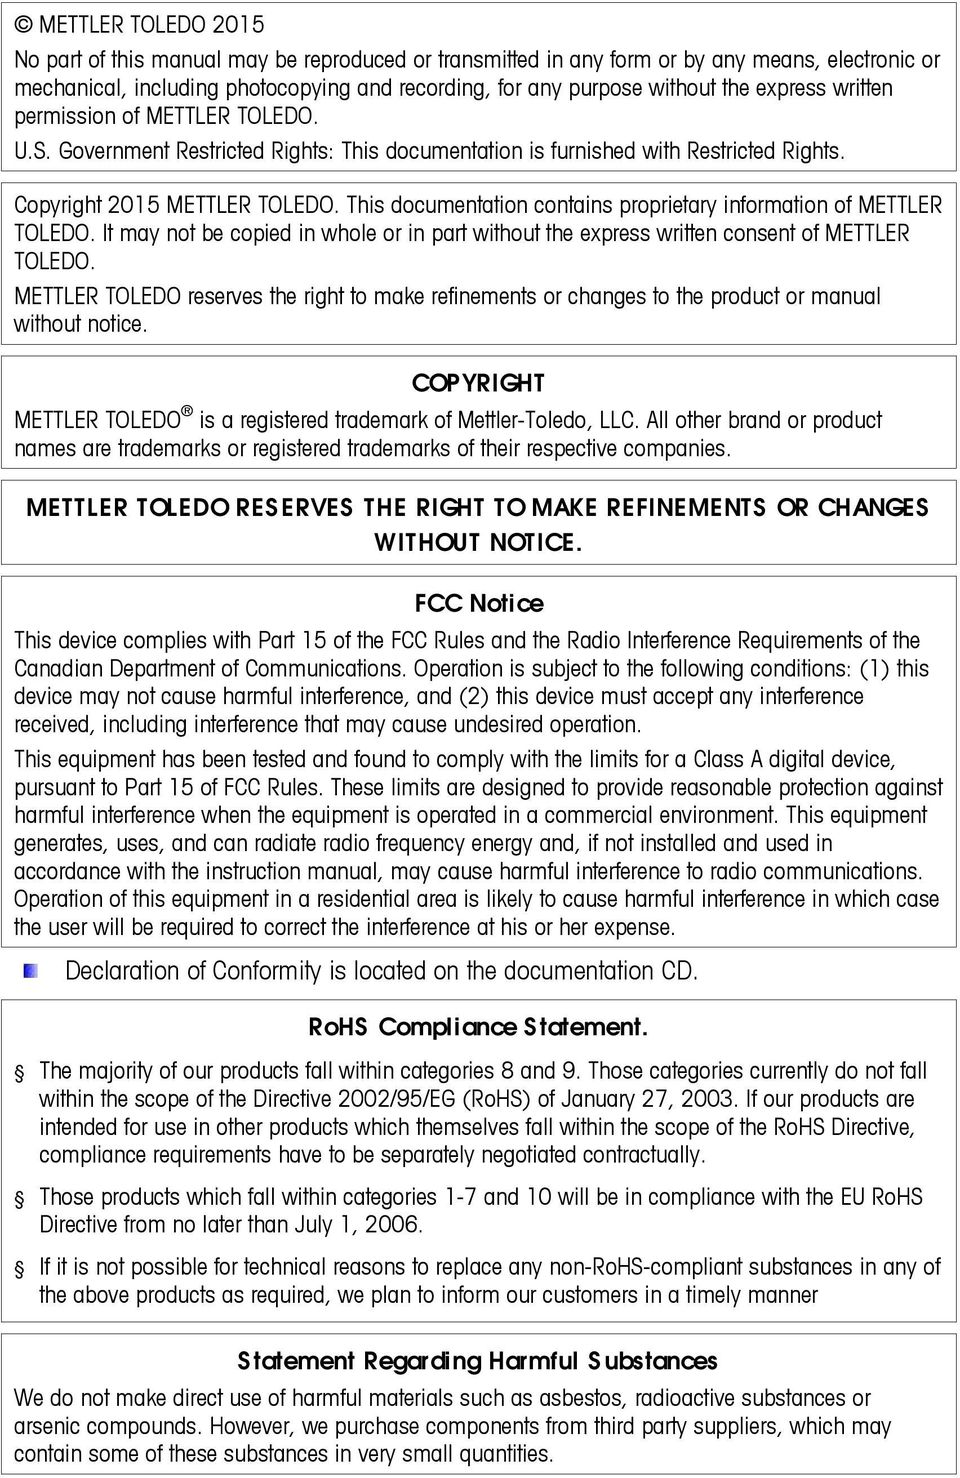 This documentation contains proprietary information of METTLER TOLEDO. It may not be copied in whole or in part without the express written consent of METTLER TOLEDO.